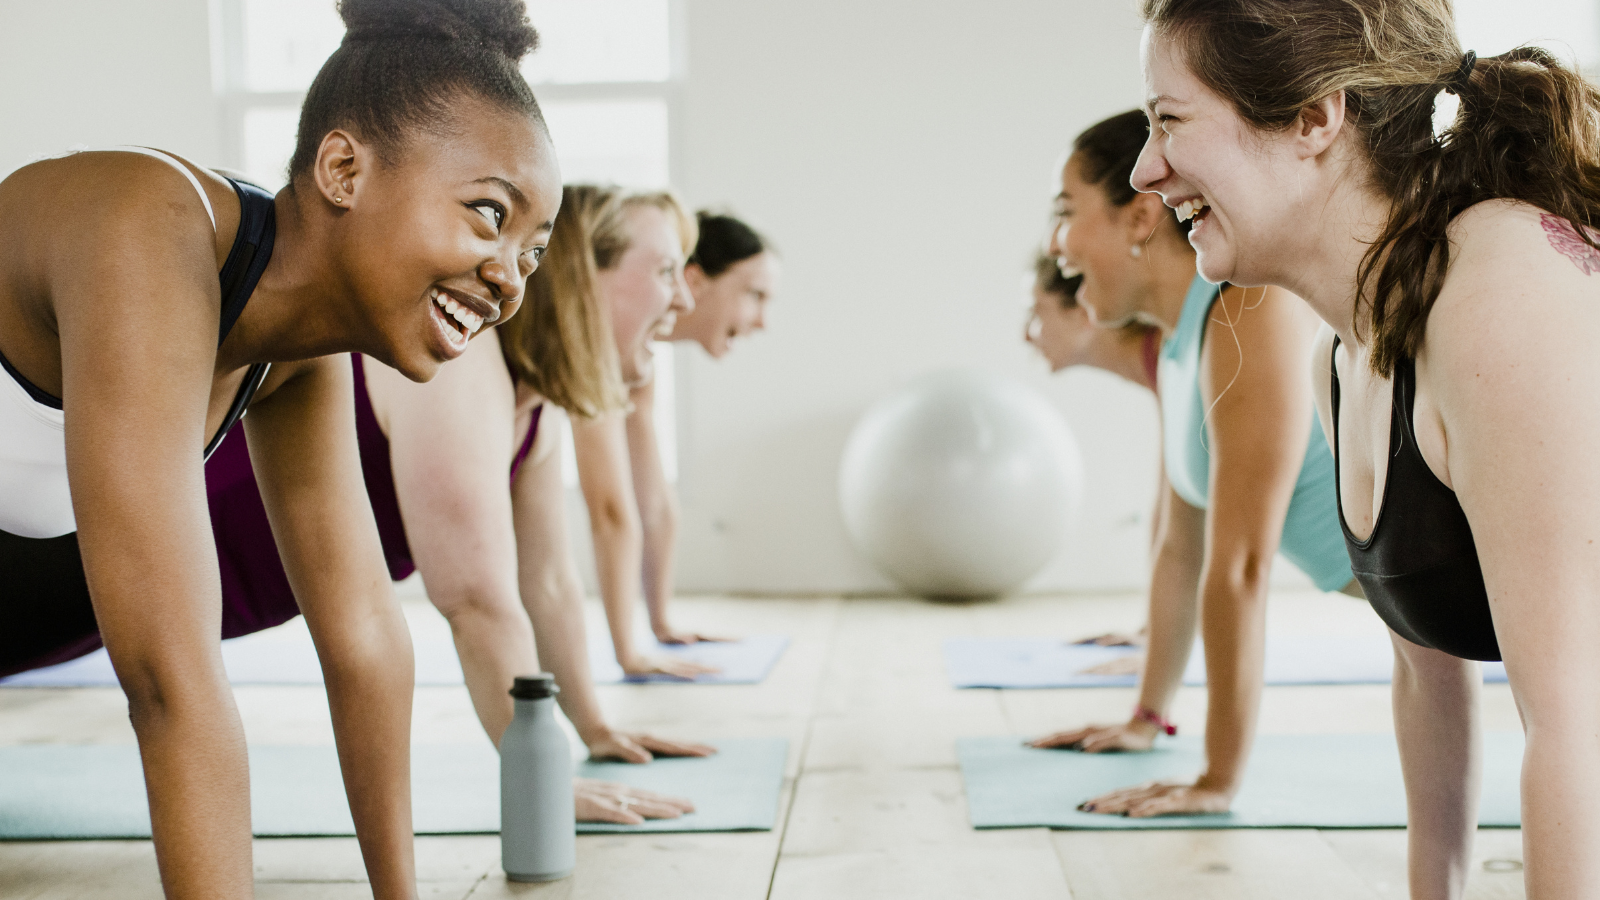 Group of cheerful women in yoga class and how that cheerfulness spreads more cheerfulness